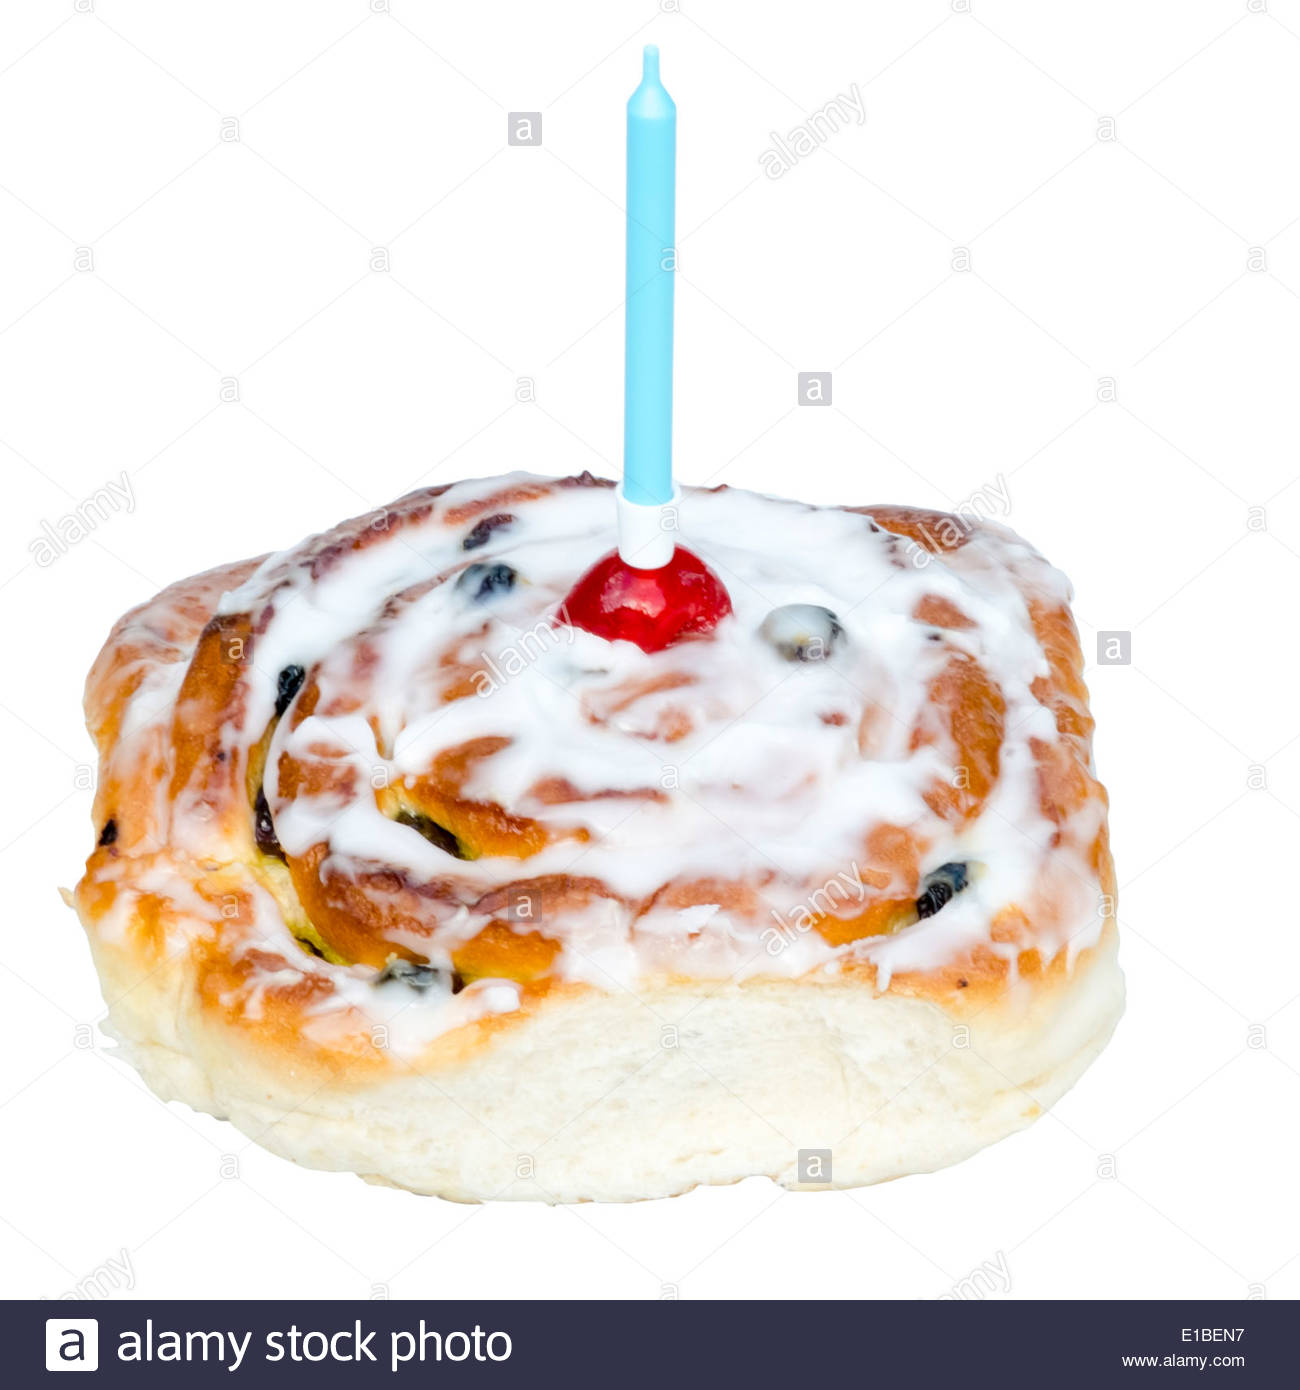 Belgian bun with a blue birthday candle. Iced bun with a cherry on top, isolated against a white background. - Stock Image